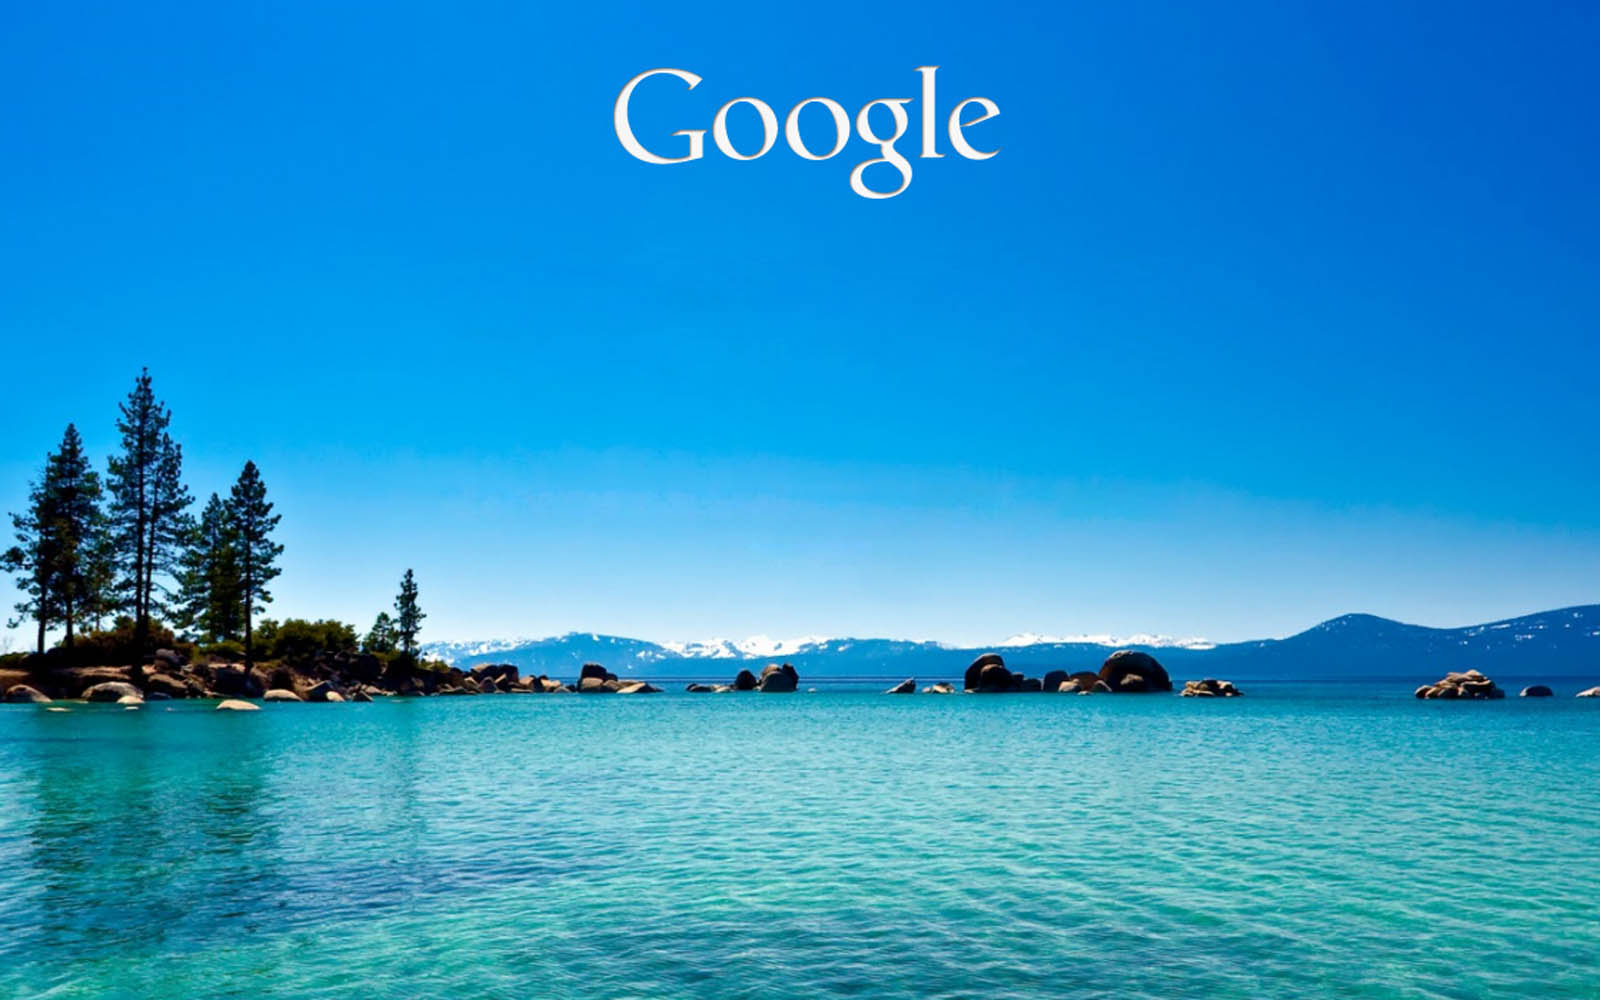 wallpaper google 30 wallpapers adorable wallpapers